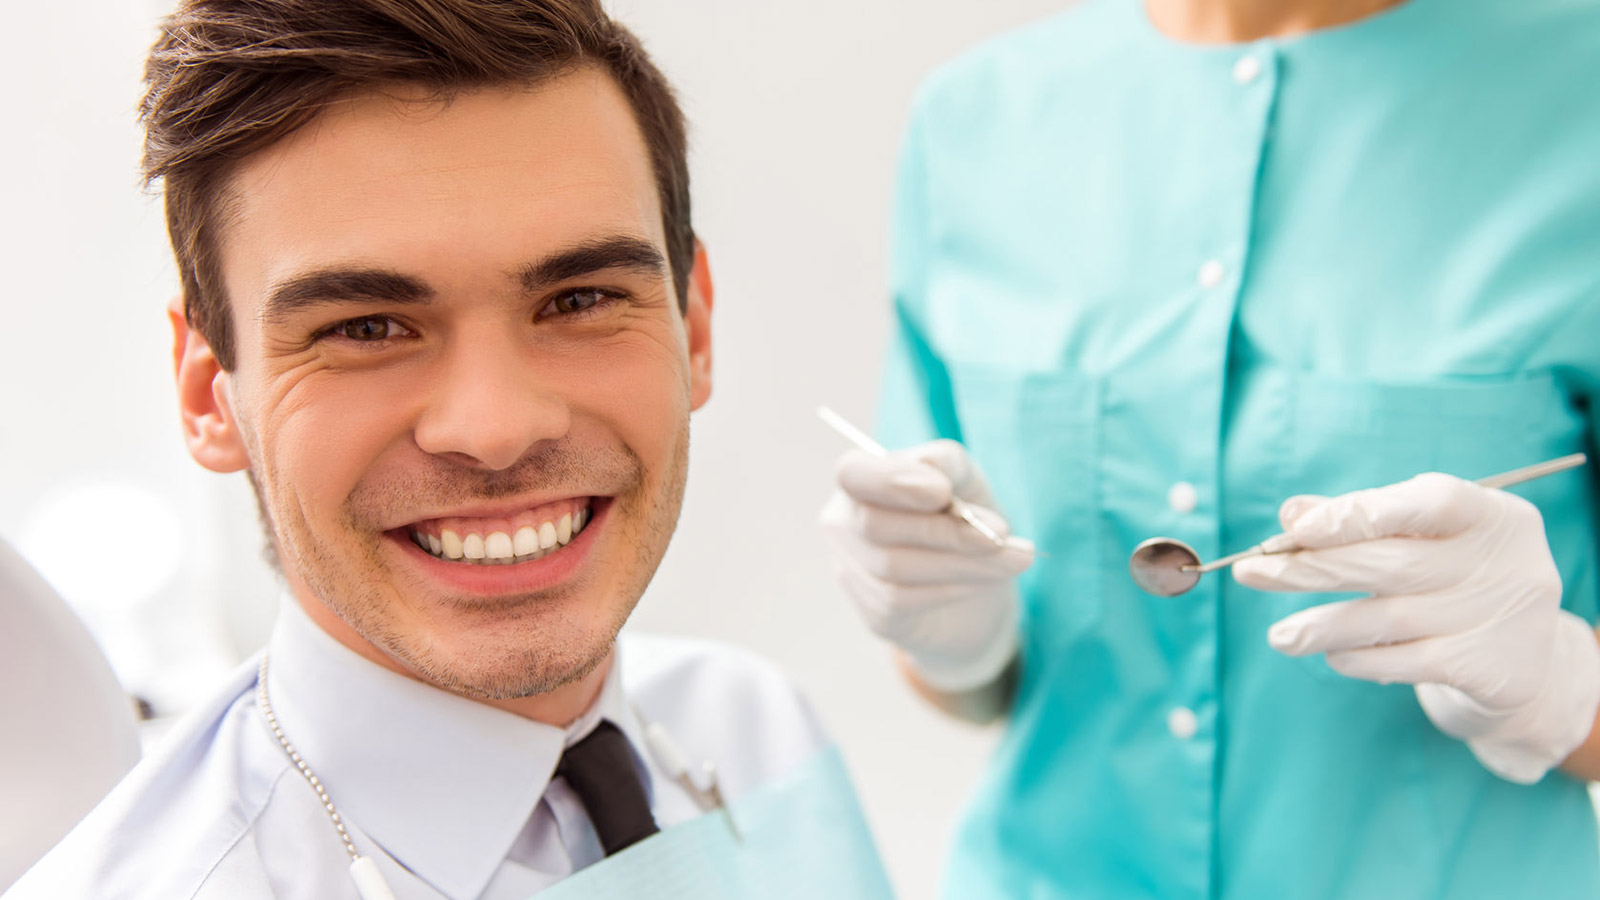 Dentist Uses Testimonials To Get More Referrals